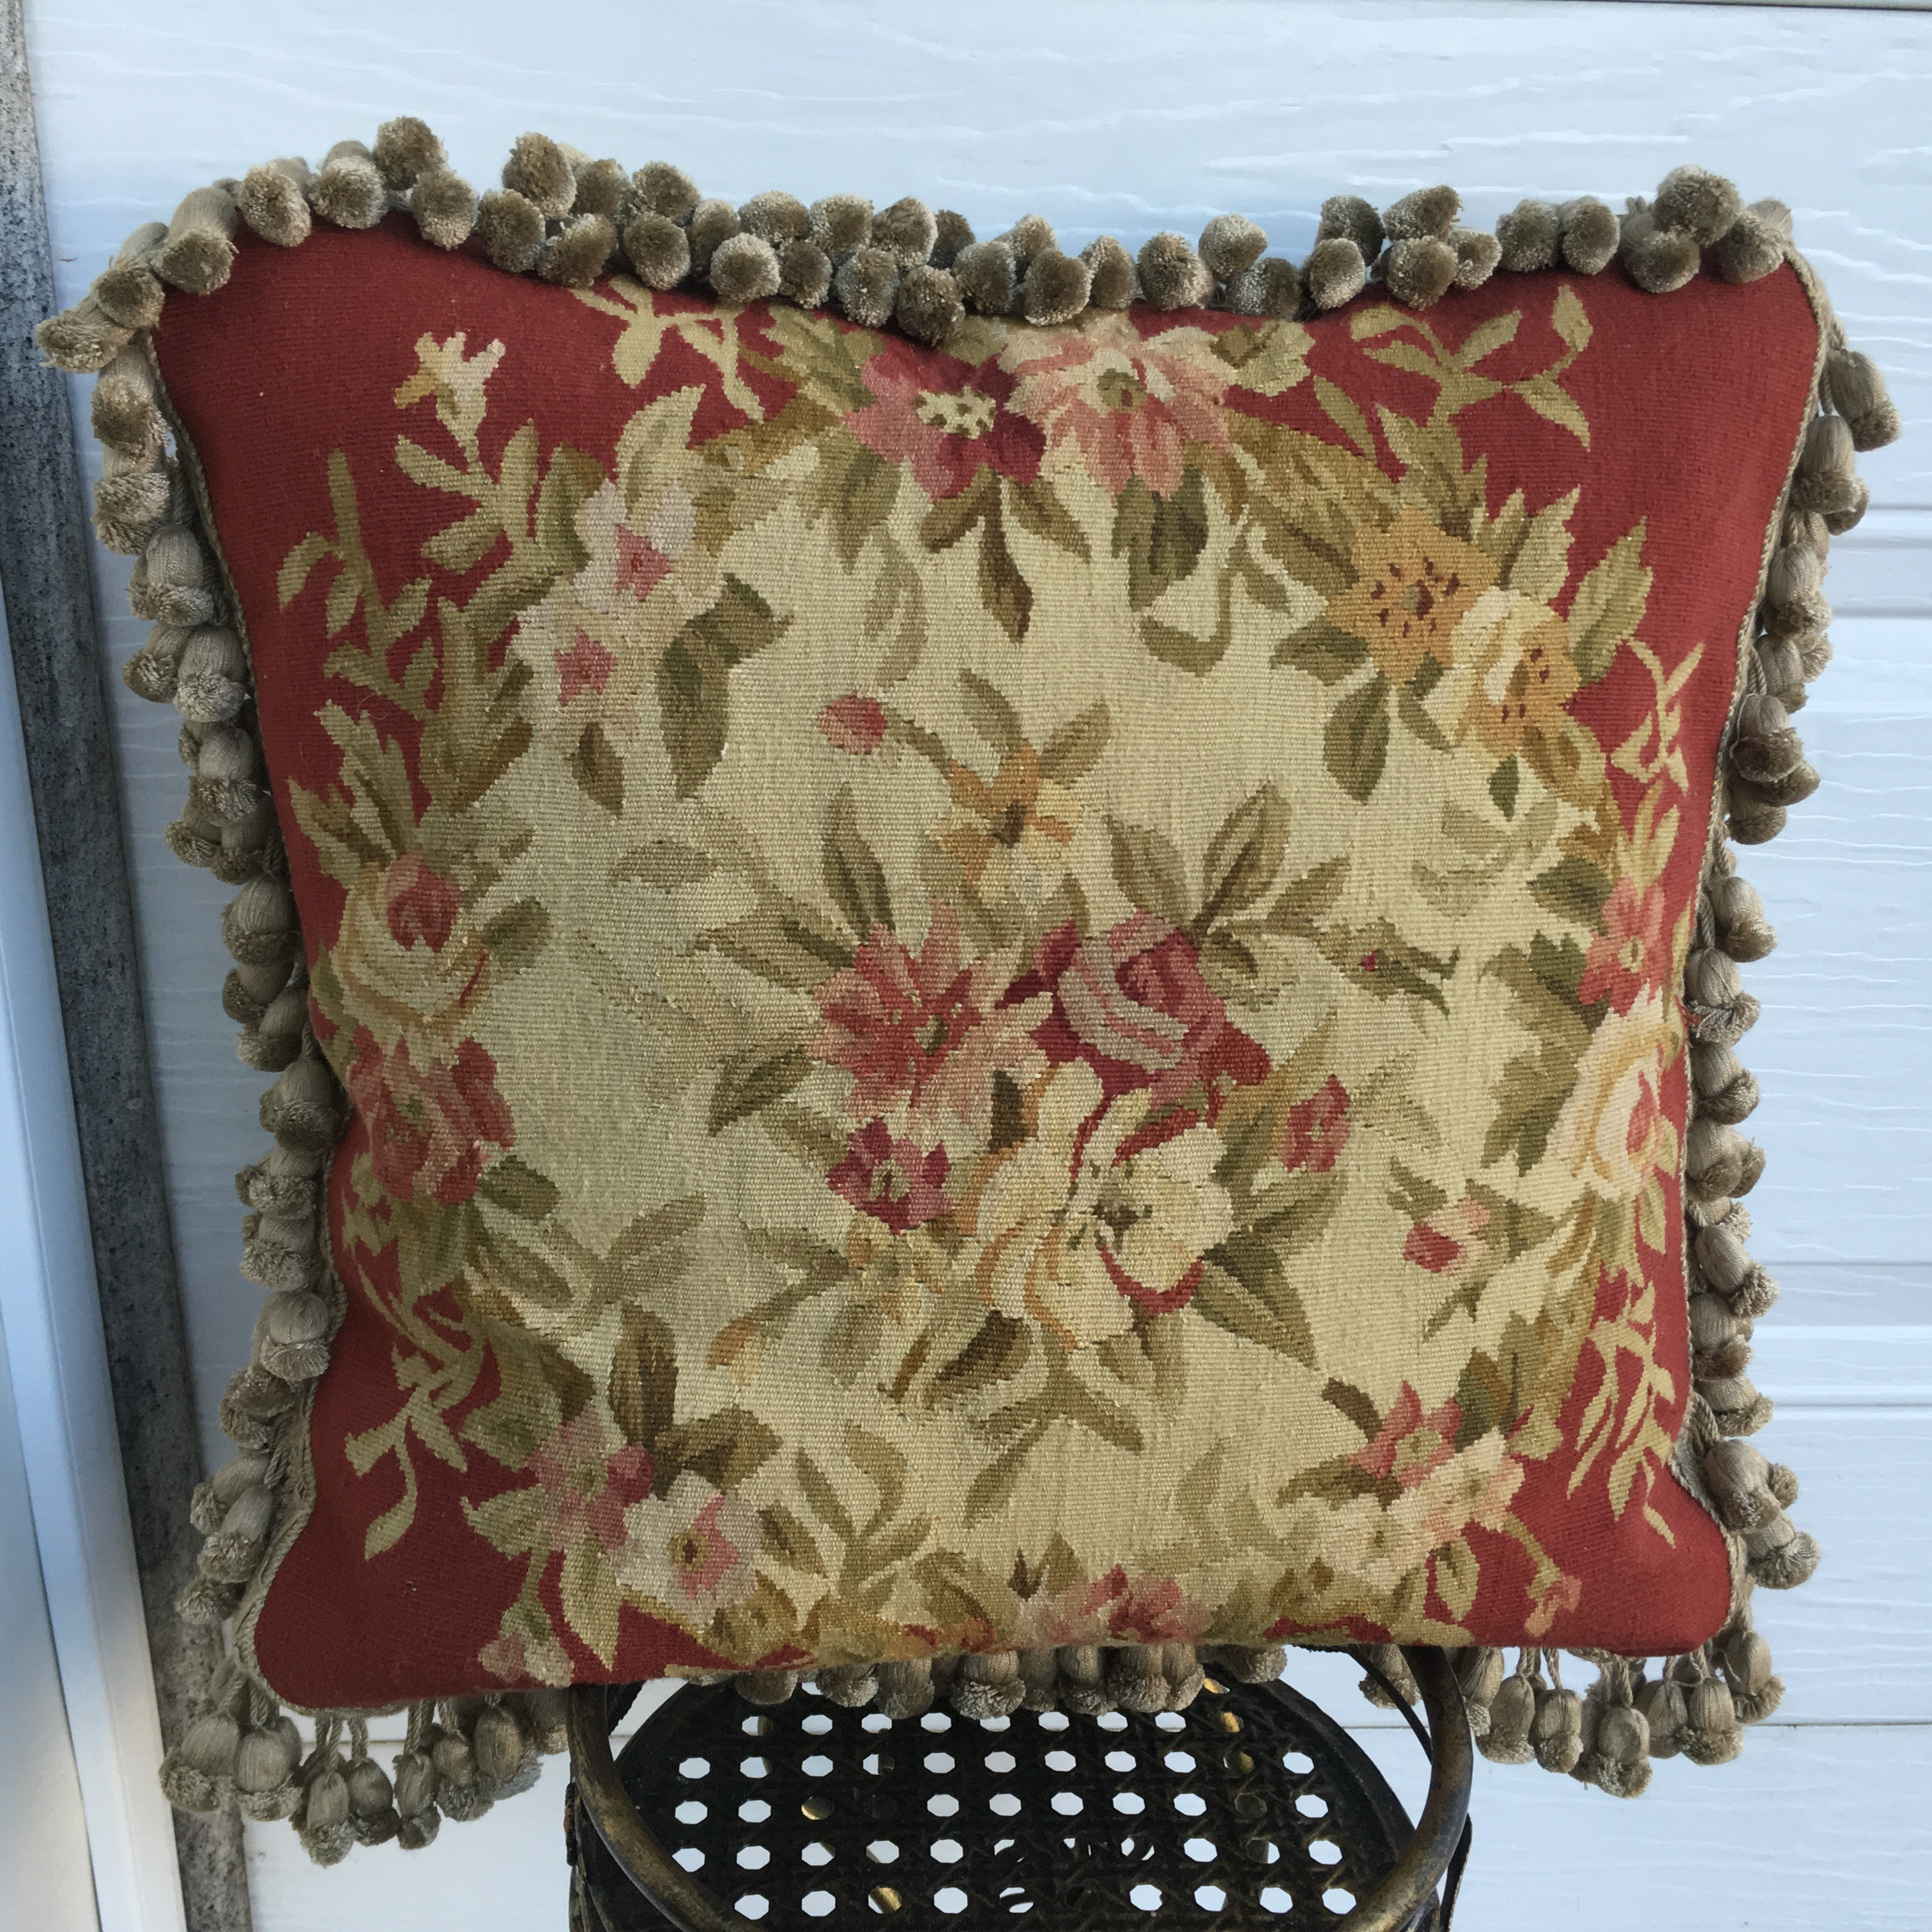 """18"""" x 18"""" Handmade French Gobelins Tapestry Weave Wool Aubusson Cushion Cover Pillow Case 12980777"""